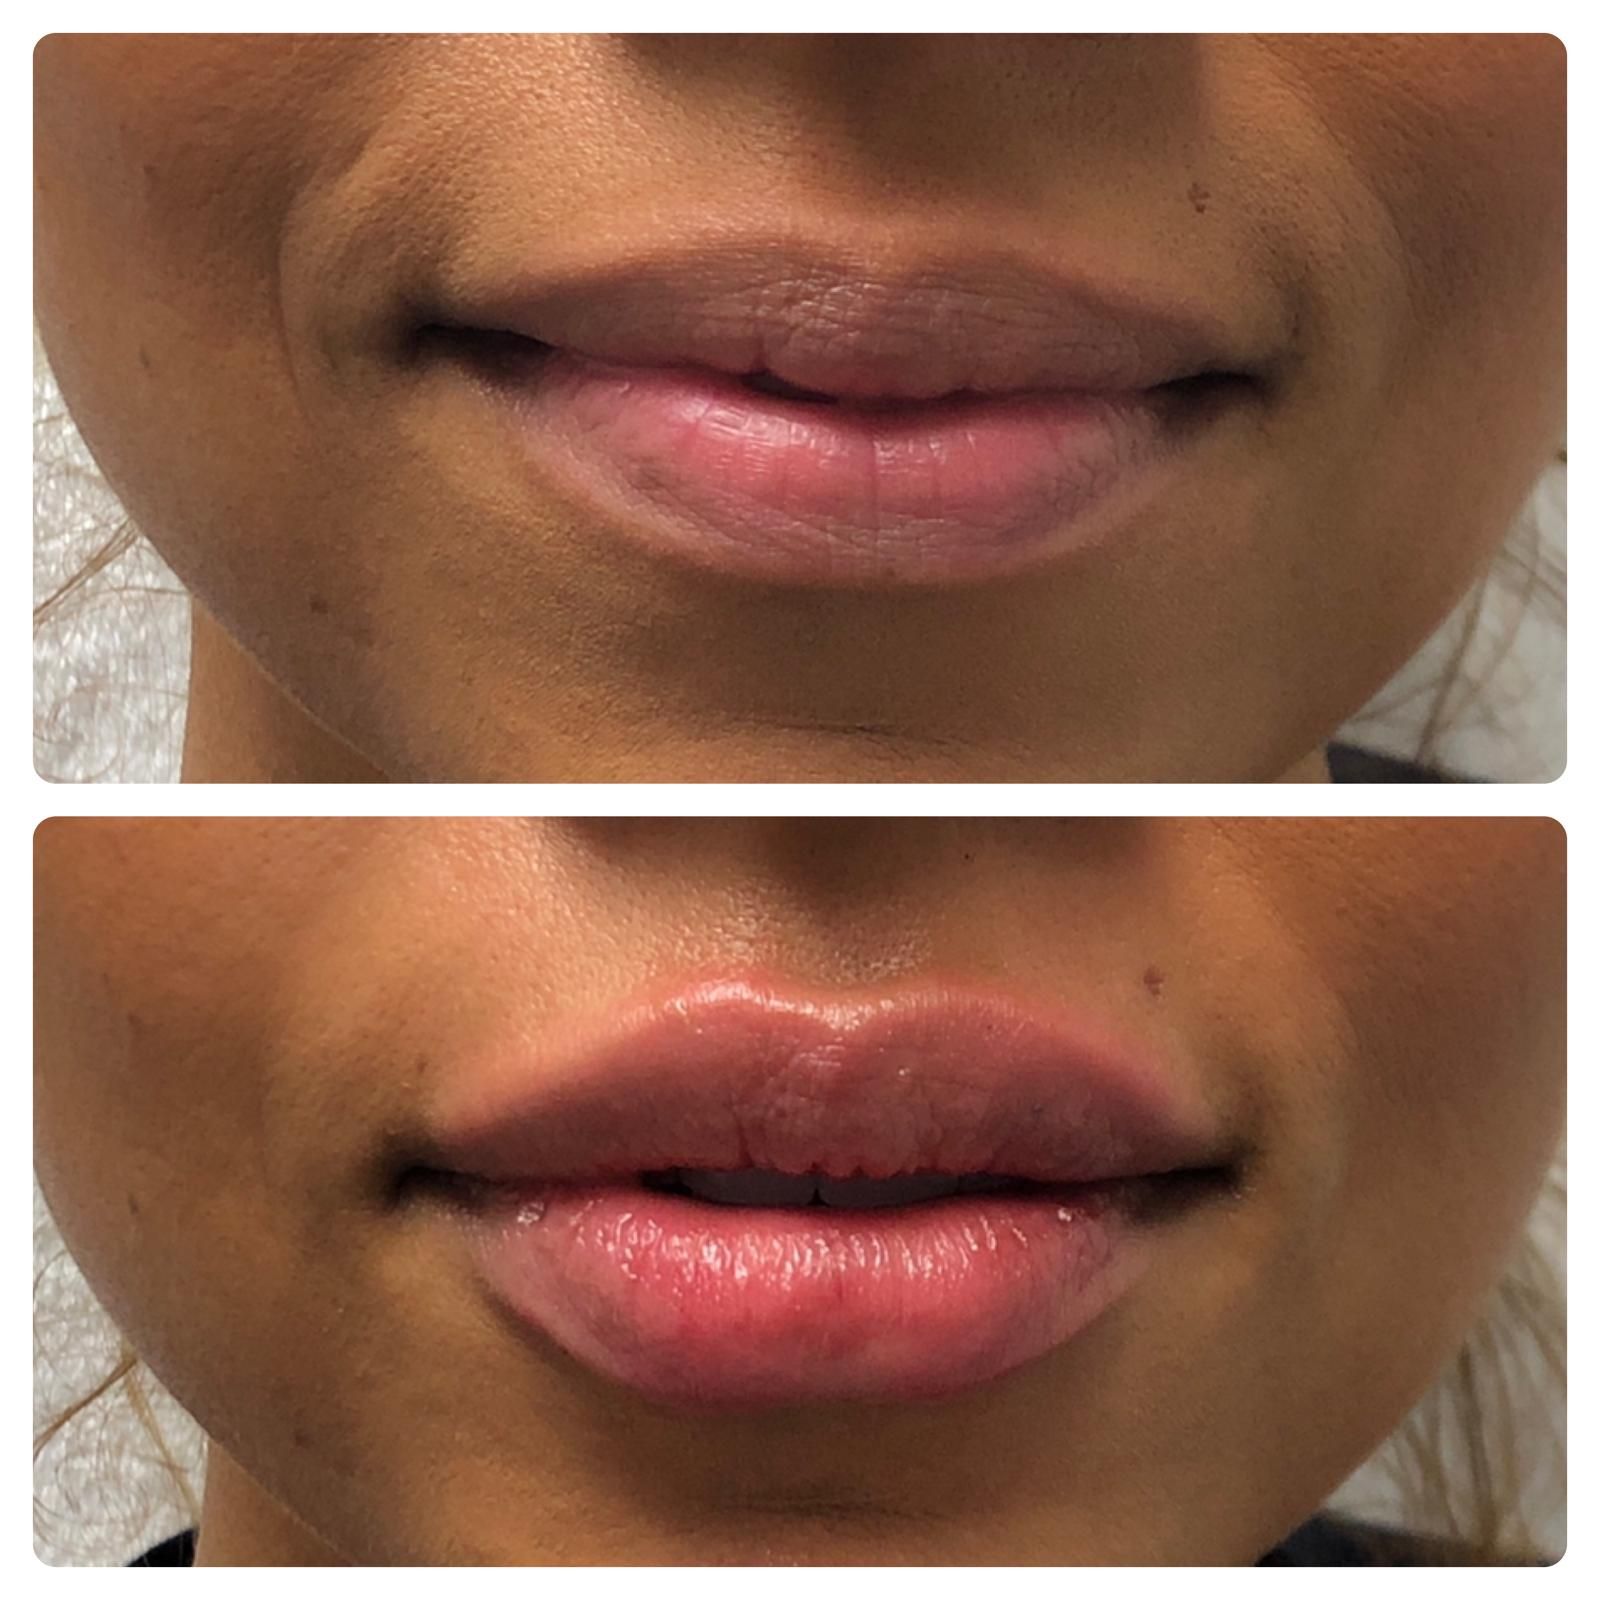 Before and After Lip Filler (lips are fuller and more evenly shaped)